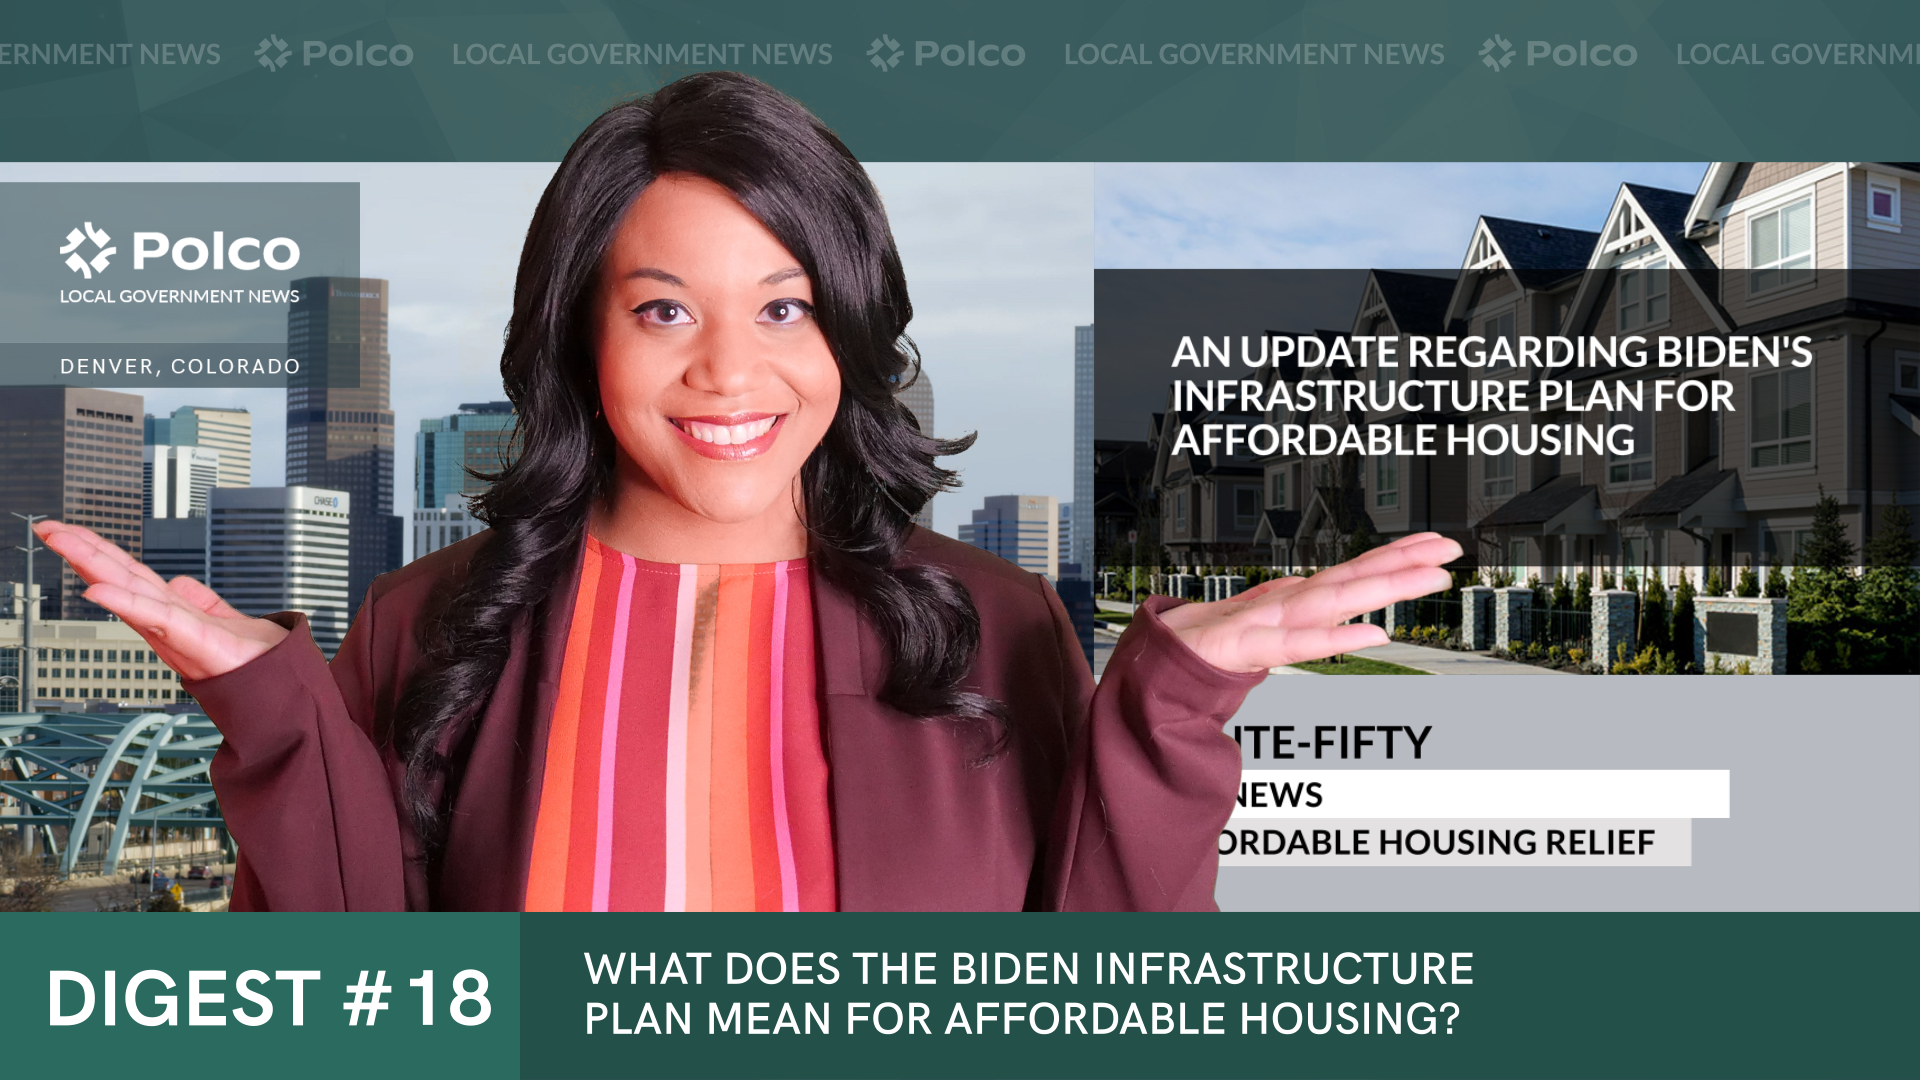 What Does the Biden Infrastructure Plan Mean For Affordable Housing?